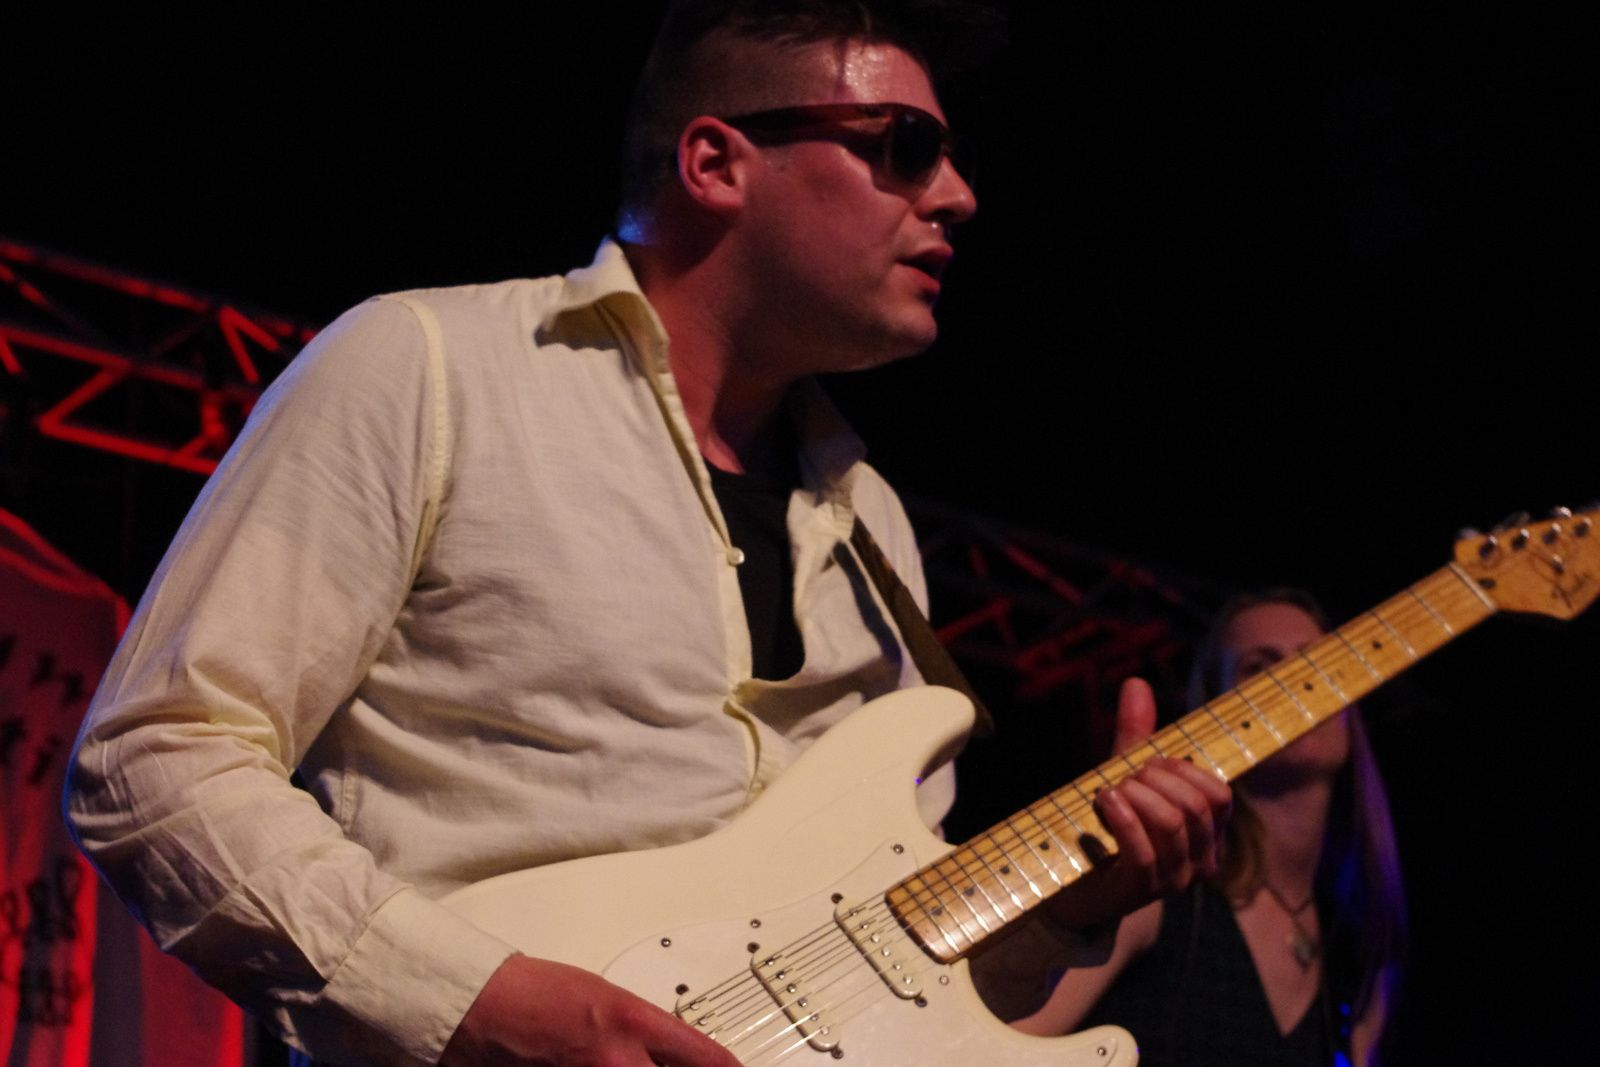 Ryan Lamb & Little Village - 19 avril 2014 - Delirium Blues festival, Lichtervelde (B)